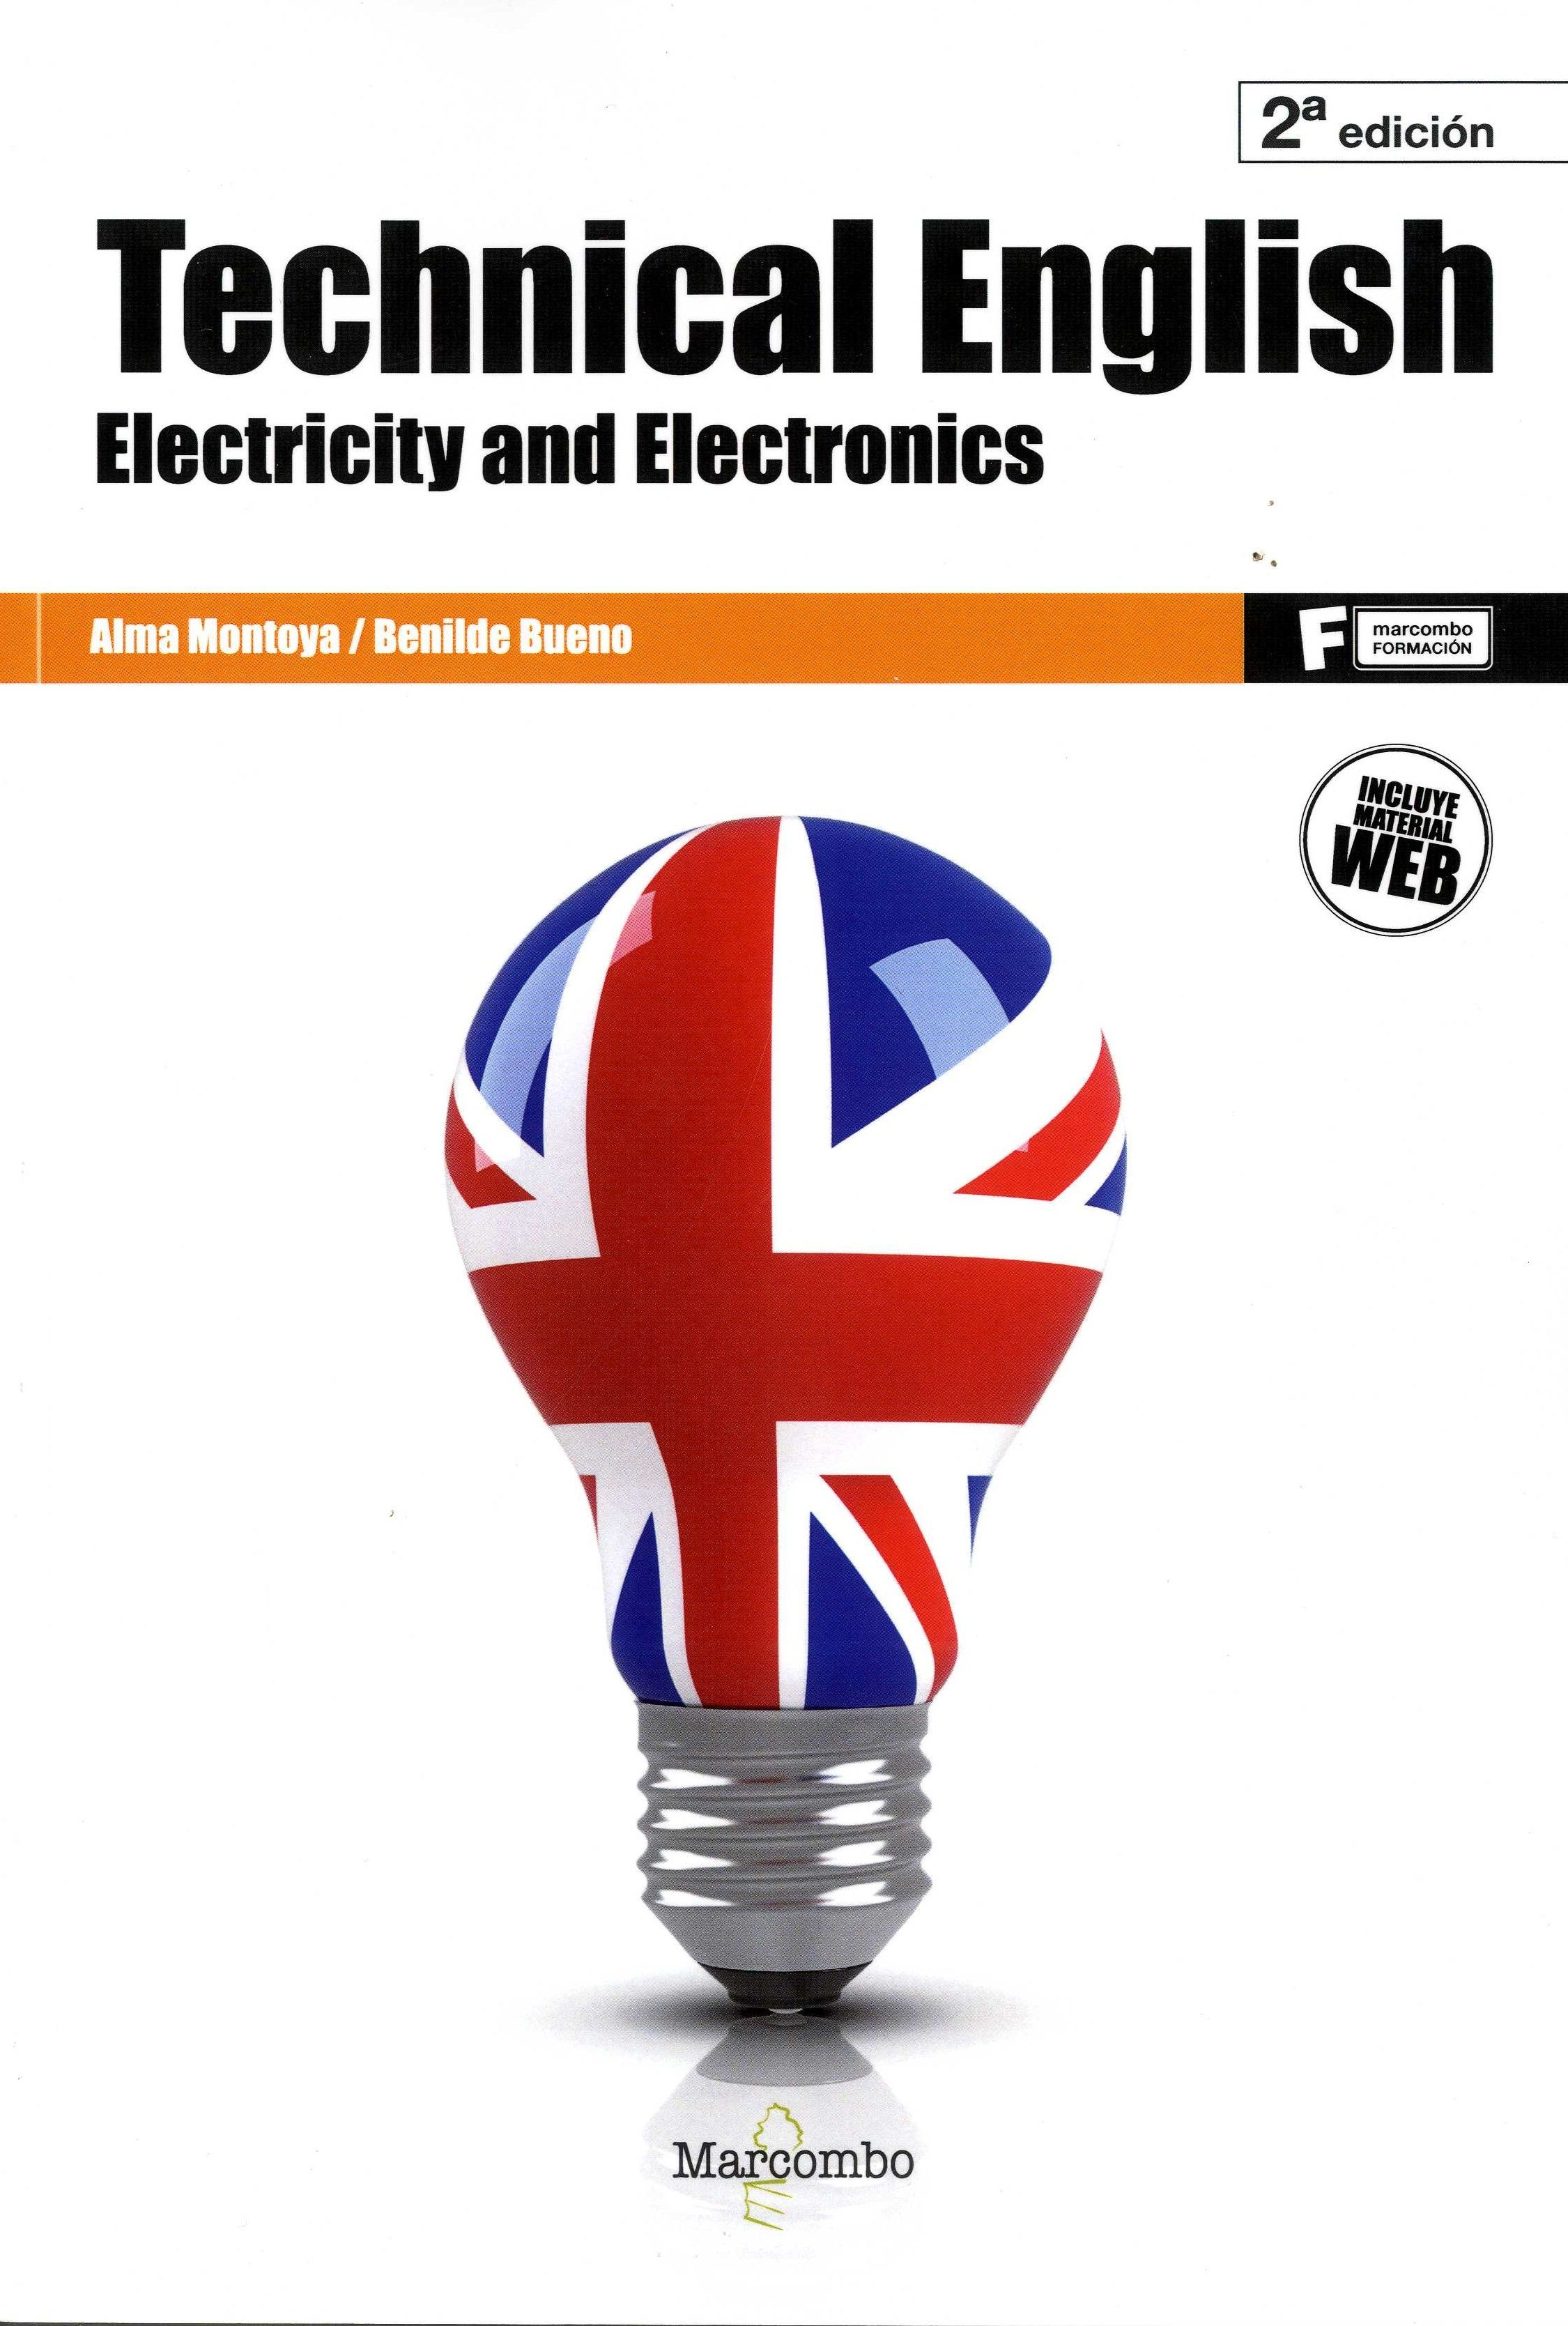 Technical english electricity and electronics / Alma